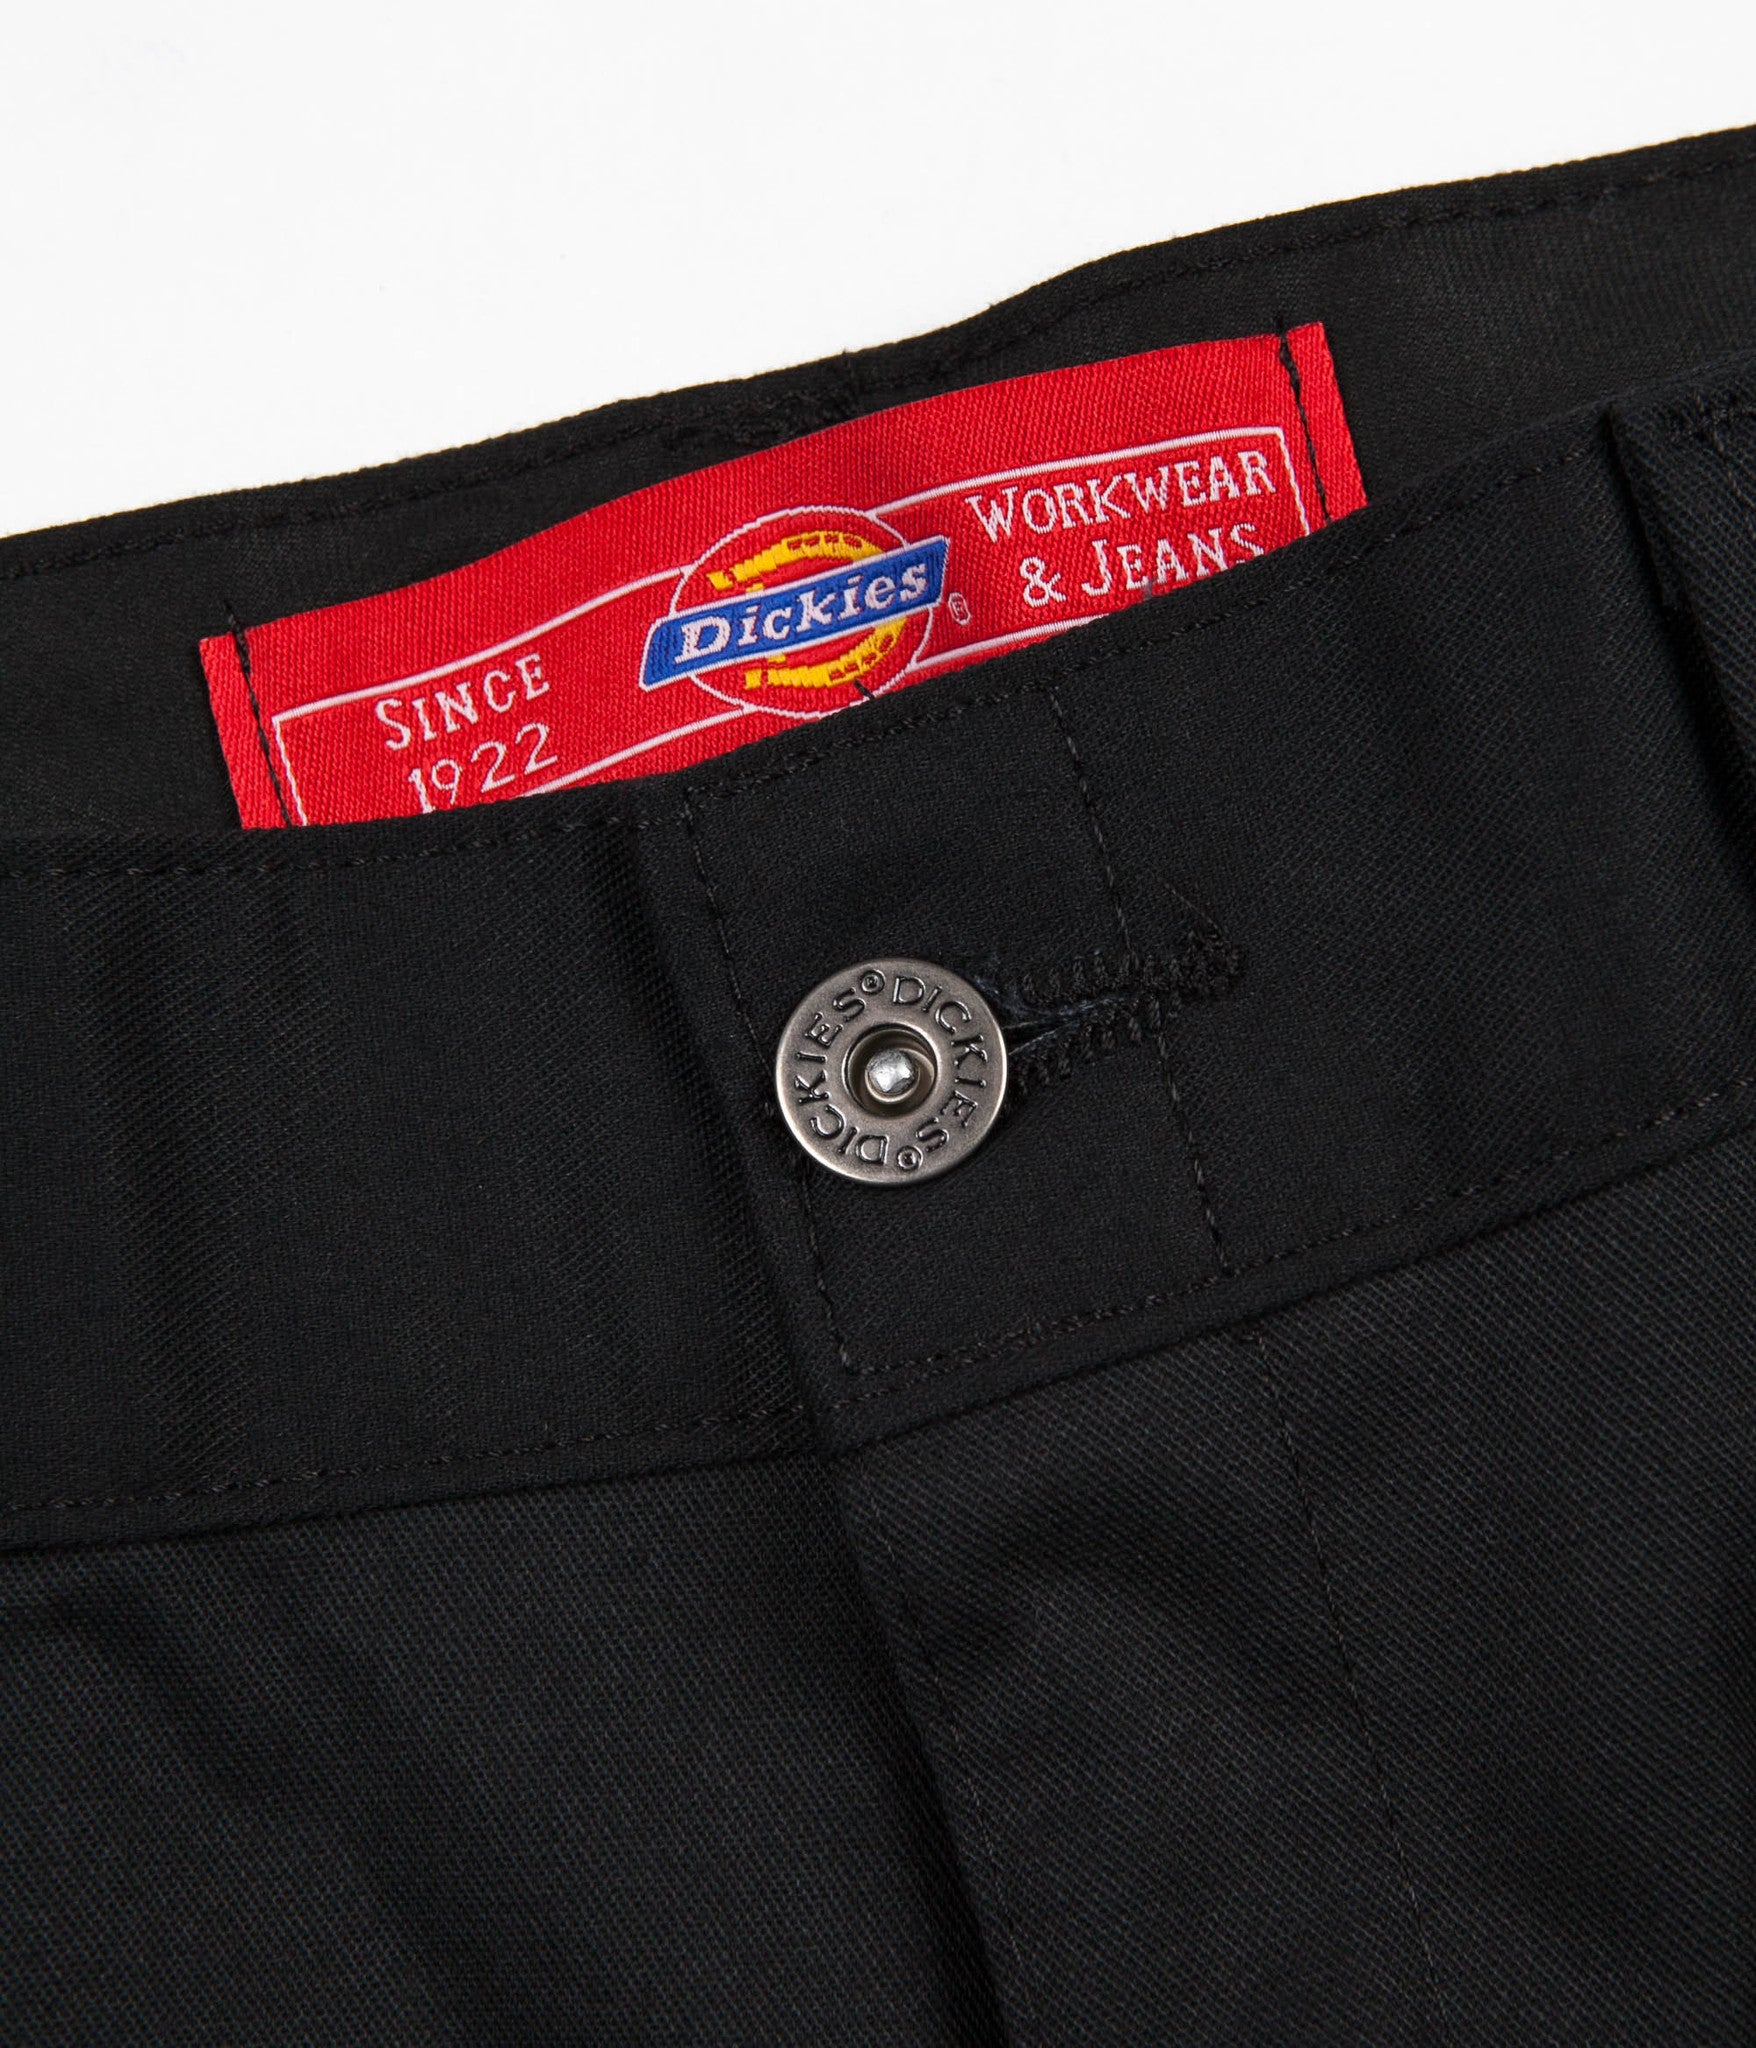 Dickies 894 Industrial Work Trousers - Black